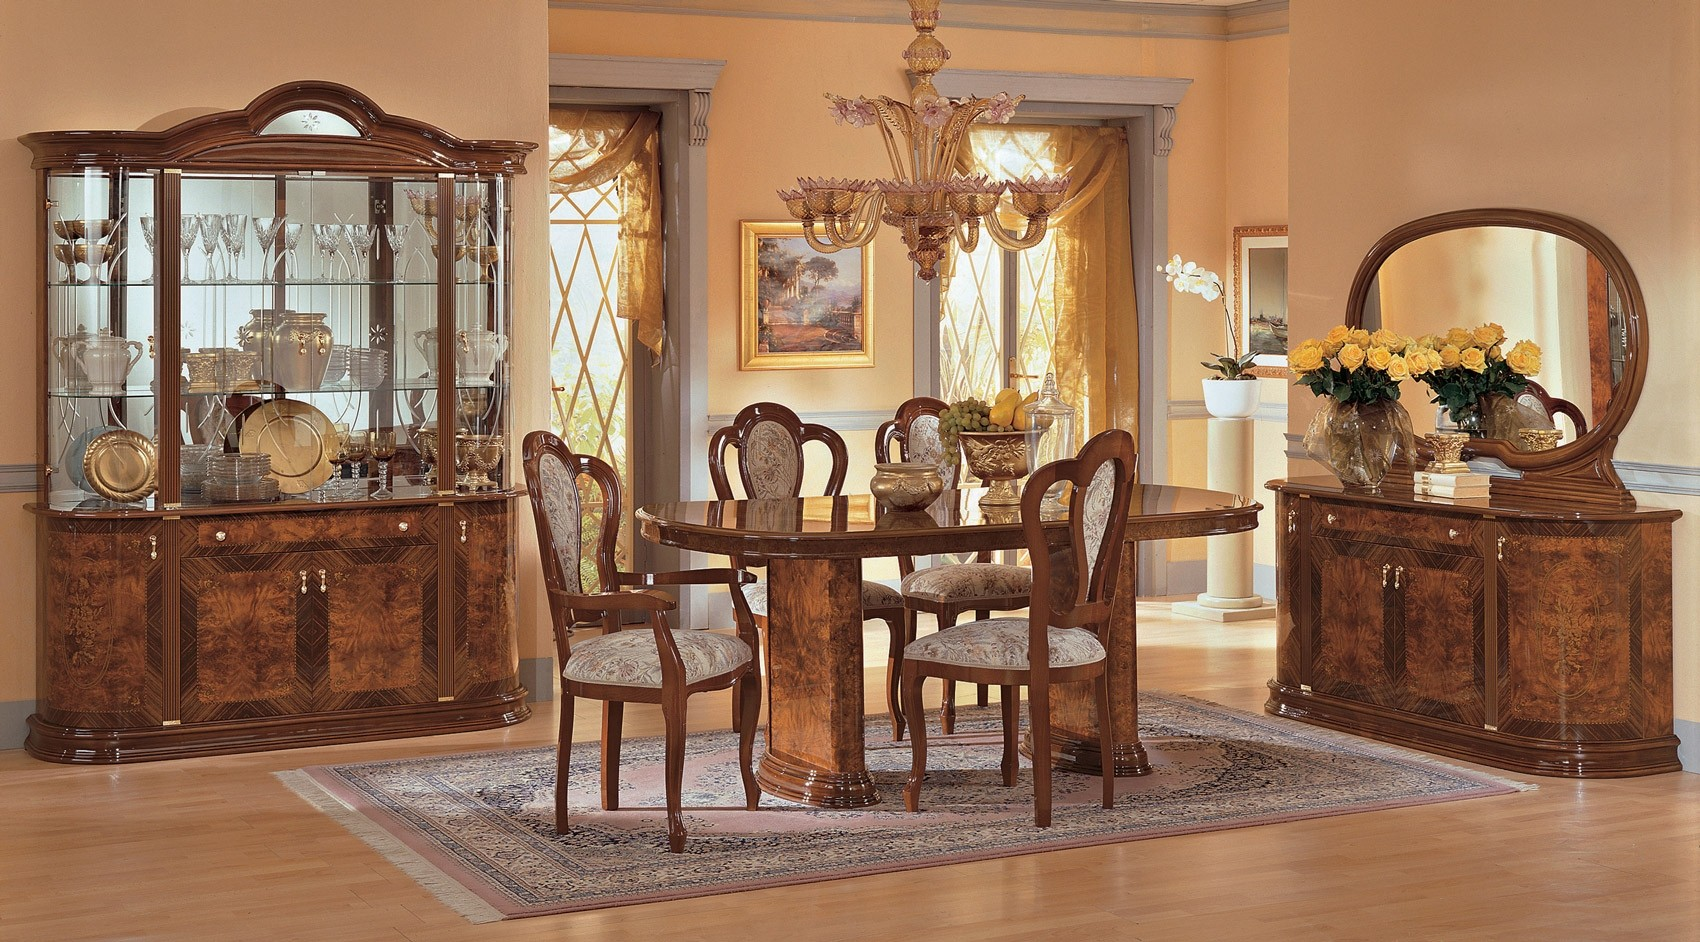 Milady Italian Dining Room Set In Brown Lacquer Finish